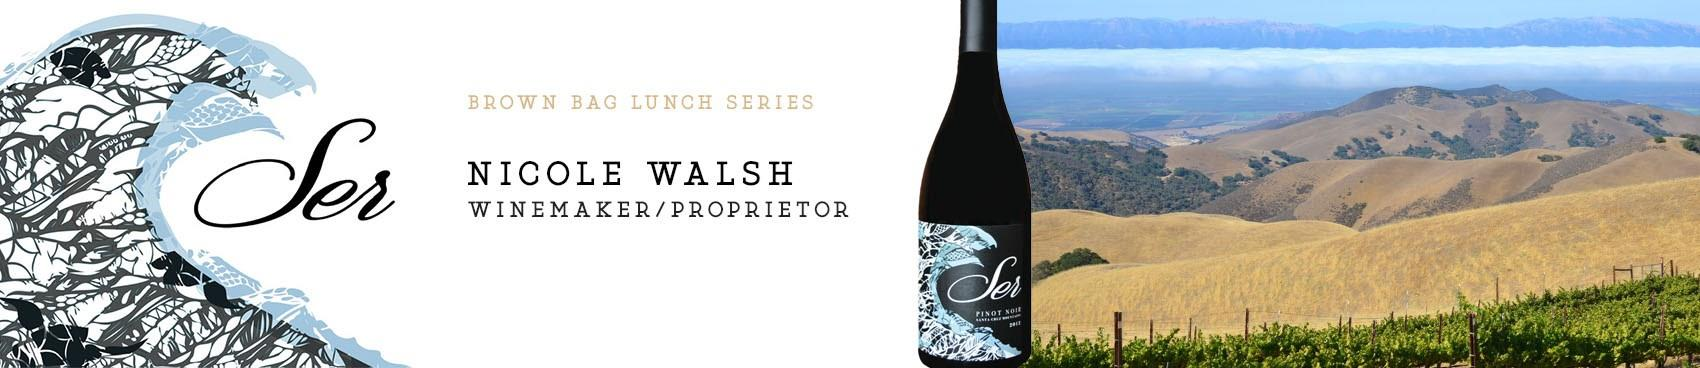 Purchase Tickets to 'Brown Bag Lunch Series' Feat. Winemaker Nicole Walsh of Ser Wines at The Annex by Industry Outlaw on CellarPass